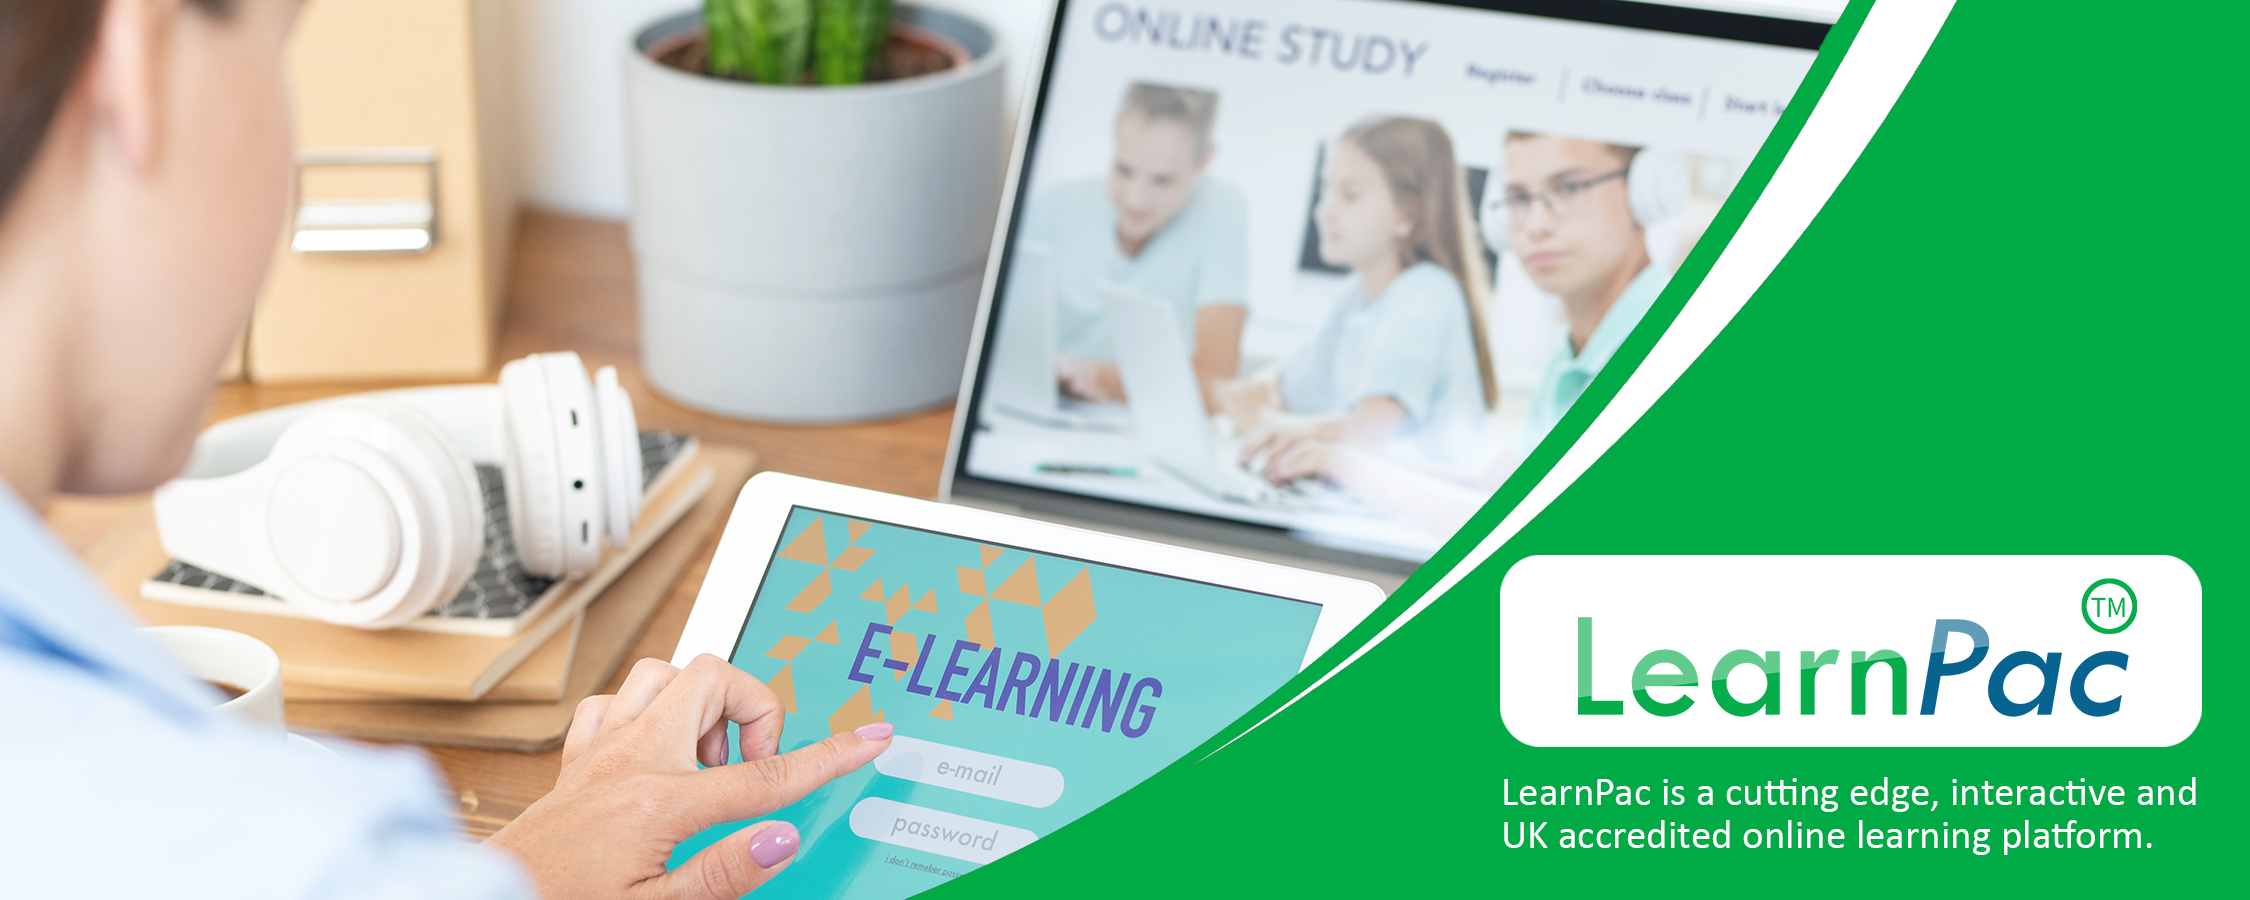 Your Healthcare Career - Online Learning Courses - E-Learning Courses - LearnPac Systems UK -